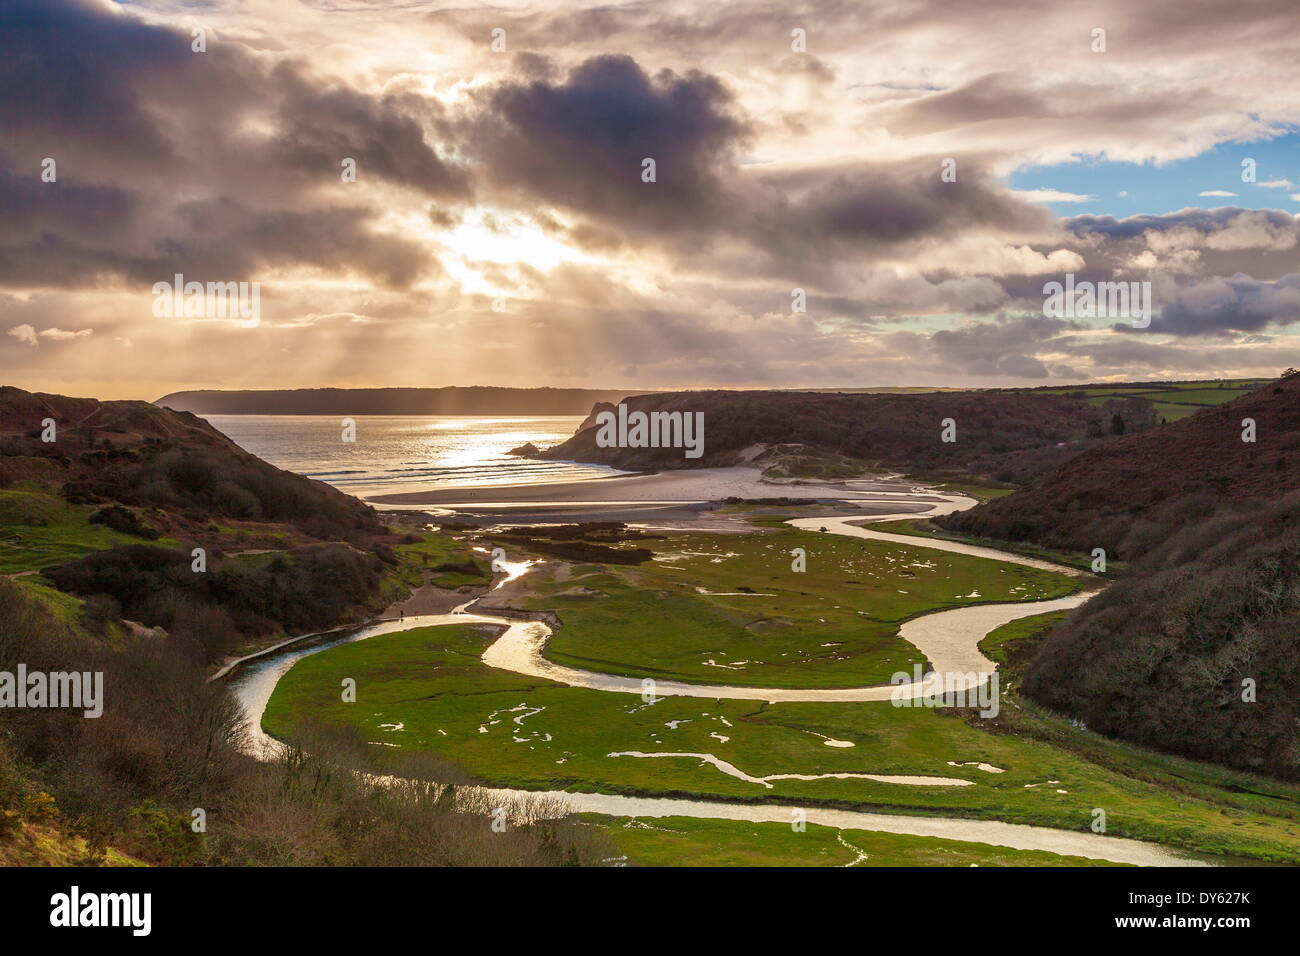 Pennard Pill, overlooking Three Cliffs Bay, Gower, Wales, United Kingdom, Europe - Stock Image